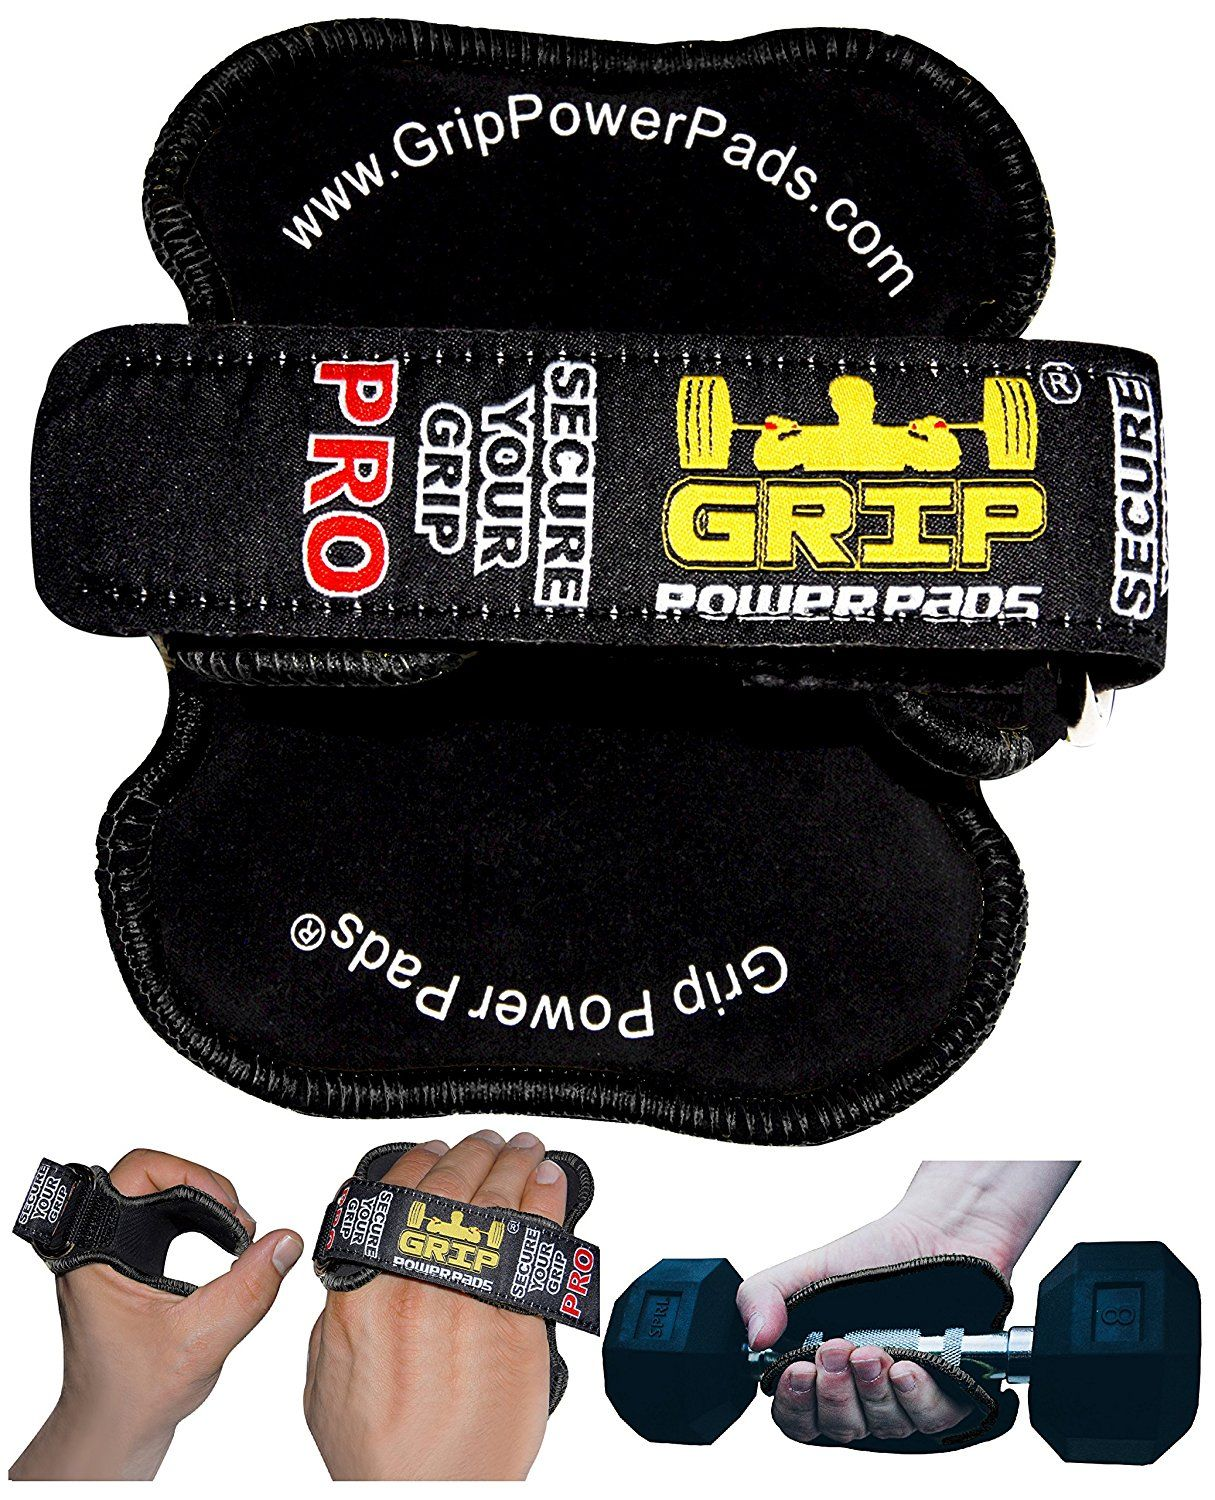 Lifting Grips by GRIP POWER PADSøPRO PATENTED Lifting Grips